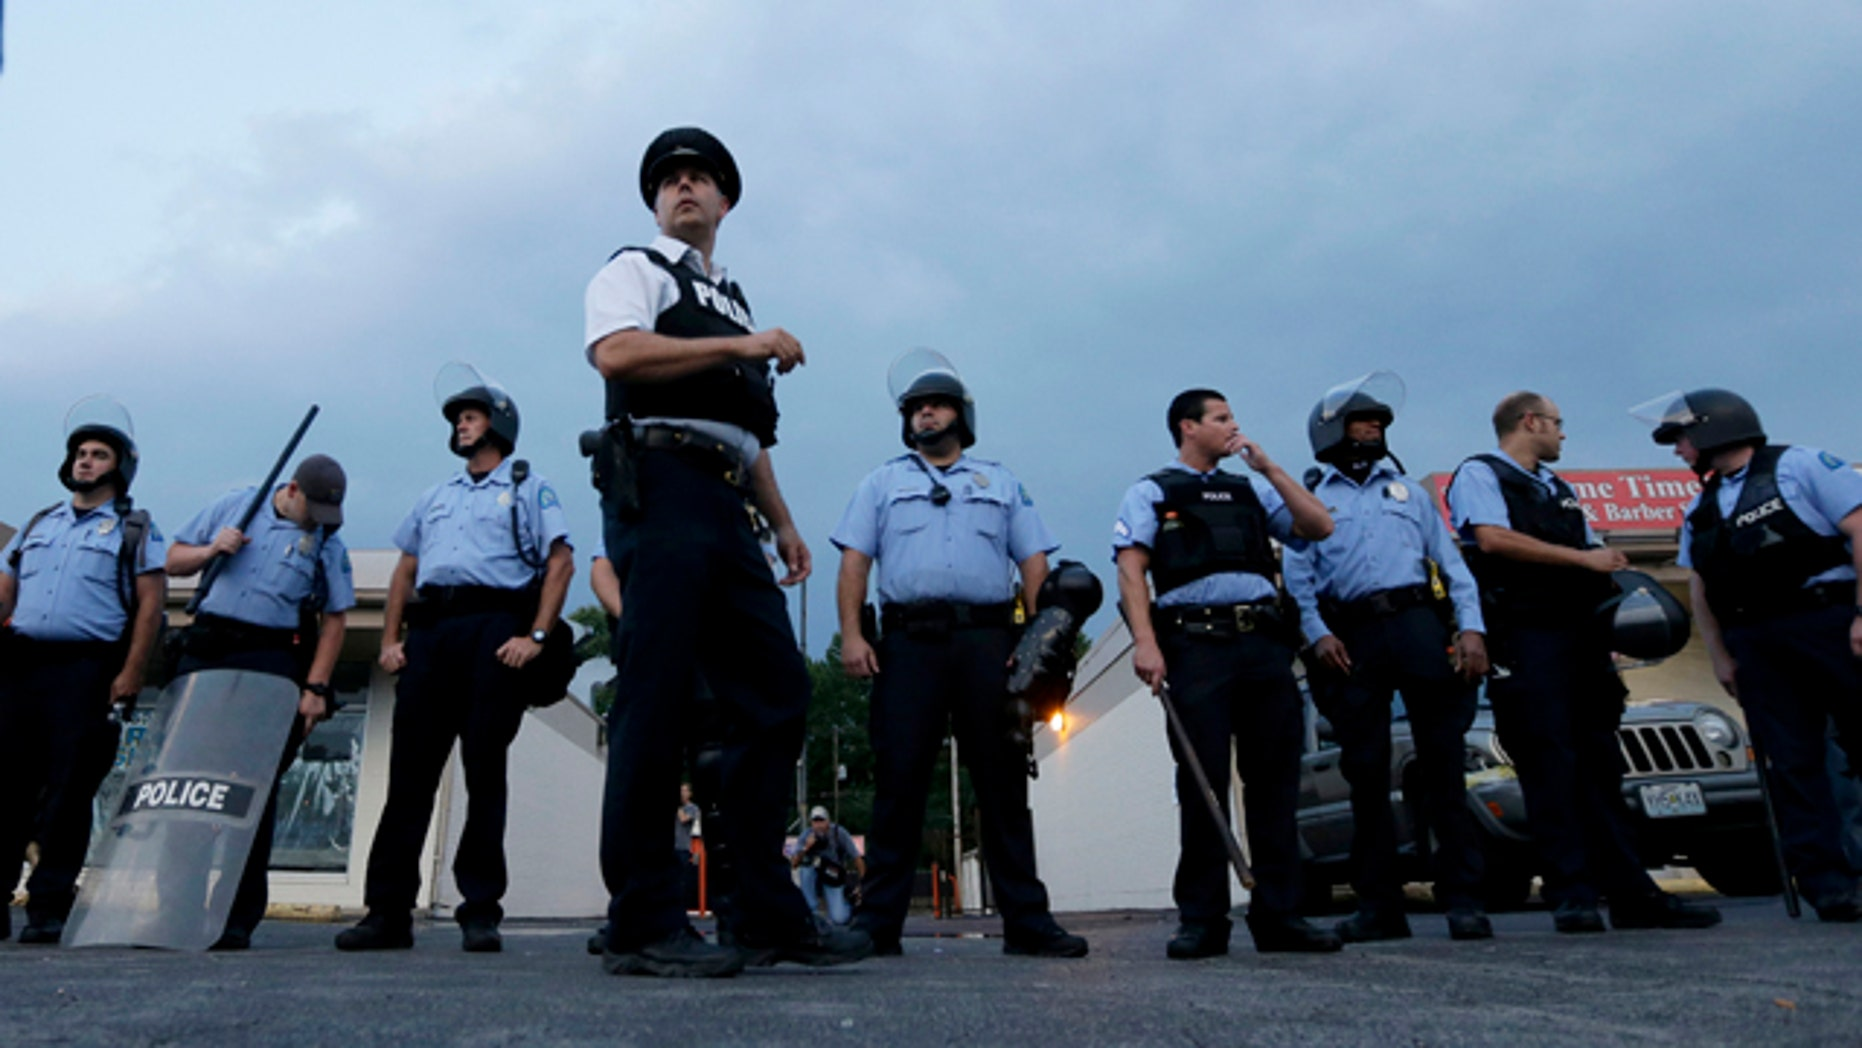 August 16, 2014: Police in riot gear prepare to take up positions as people protest the police shooting death of Michael Brown a week ago in Ferguson, Mo. (AP Photo/Charlie Riedel)